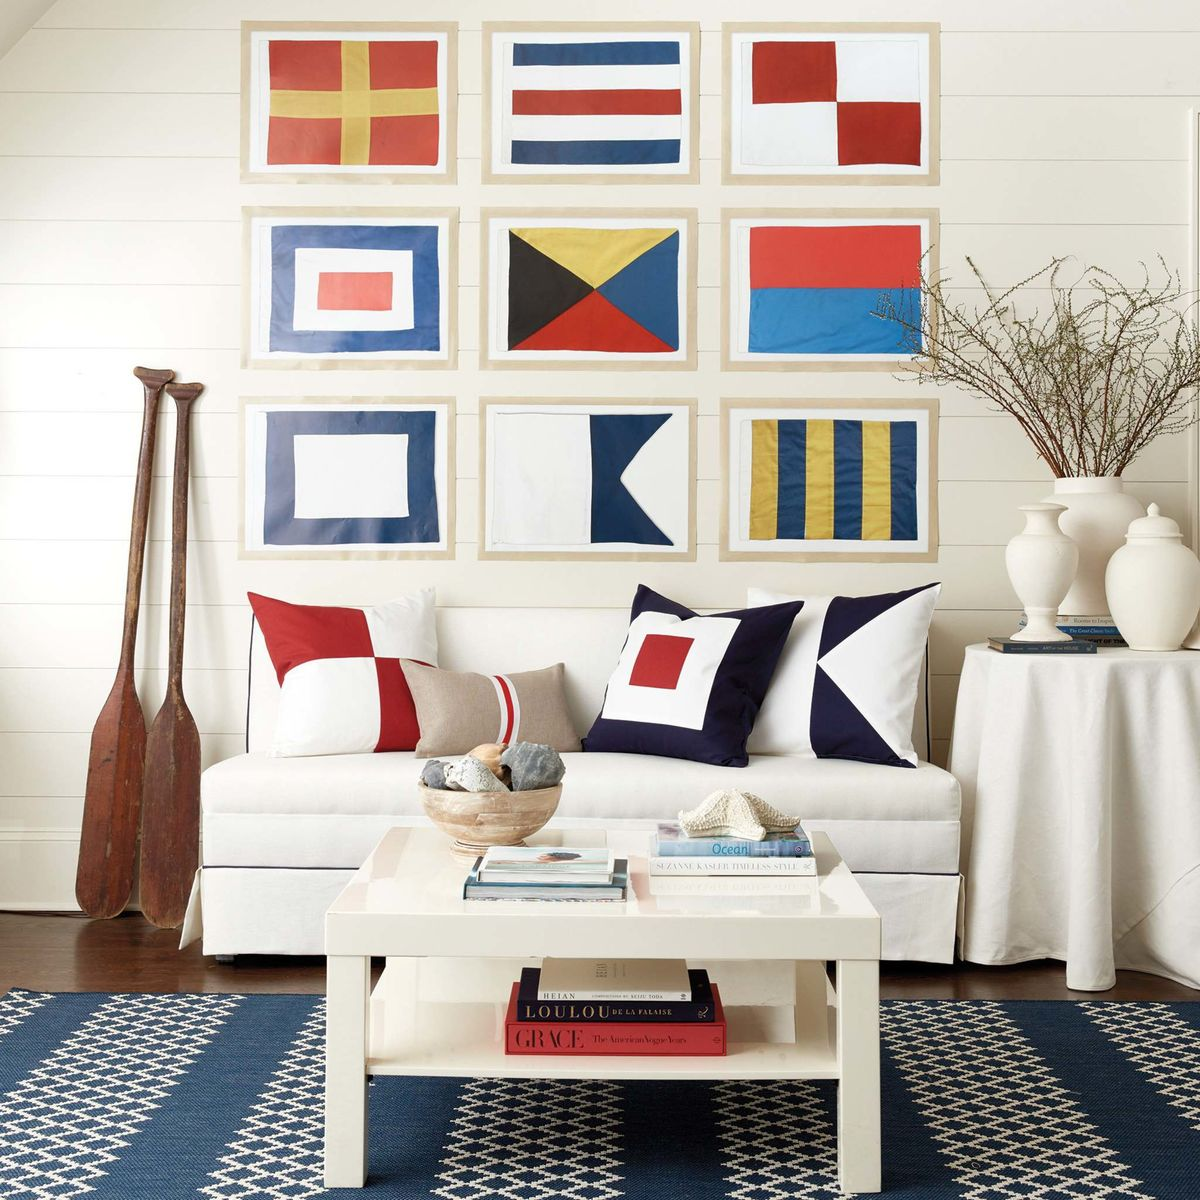 <p>Ballard Designs</p><p>Suzanne Kasler's Seafarer nautical flag collection. The collection places the graphic, modern flags inside natural wood frames; they'd make a striking display either solo or in multiples.</p></p>